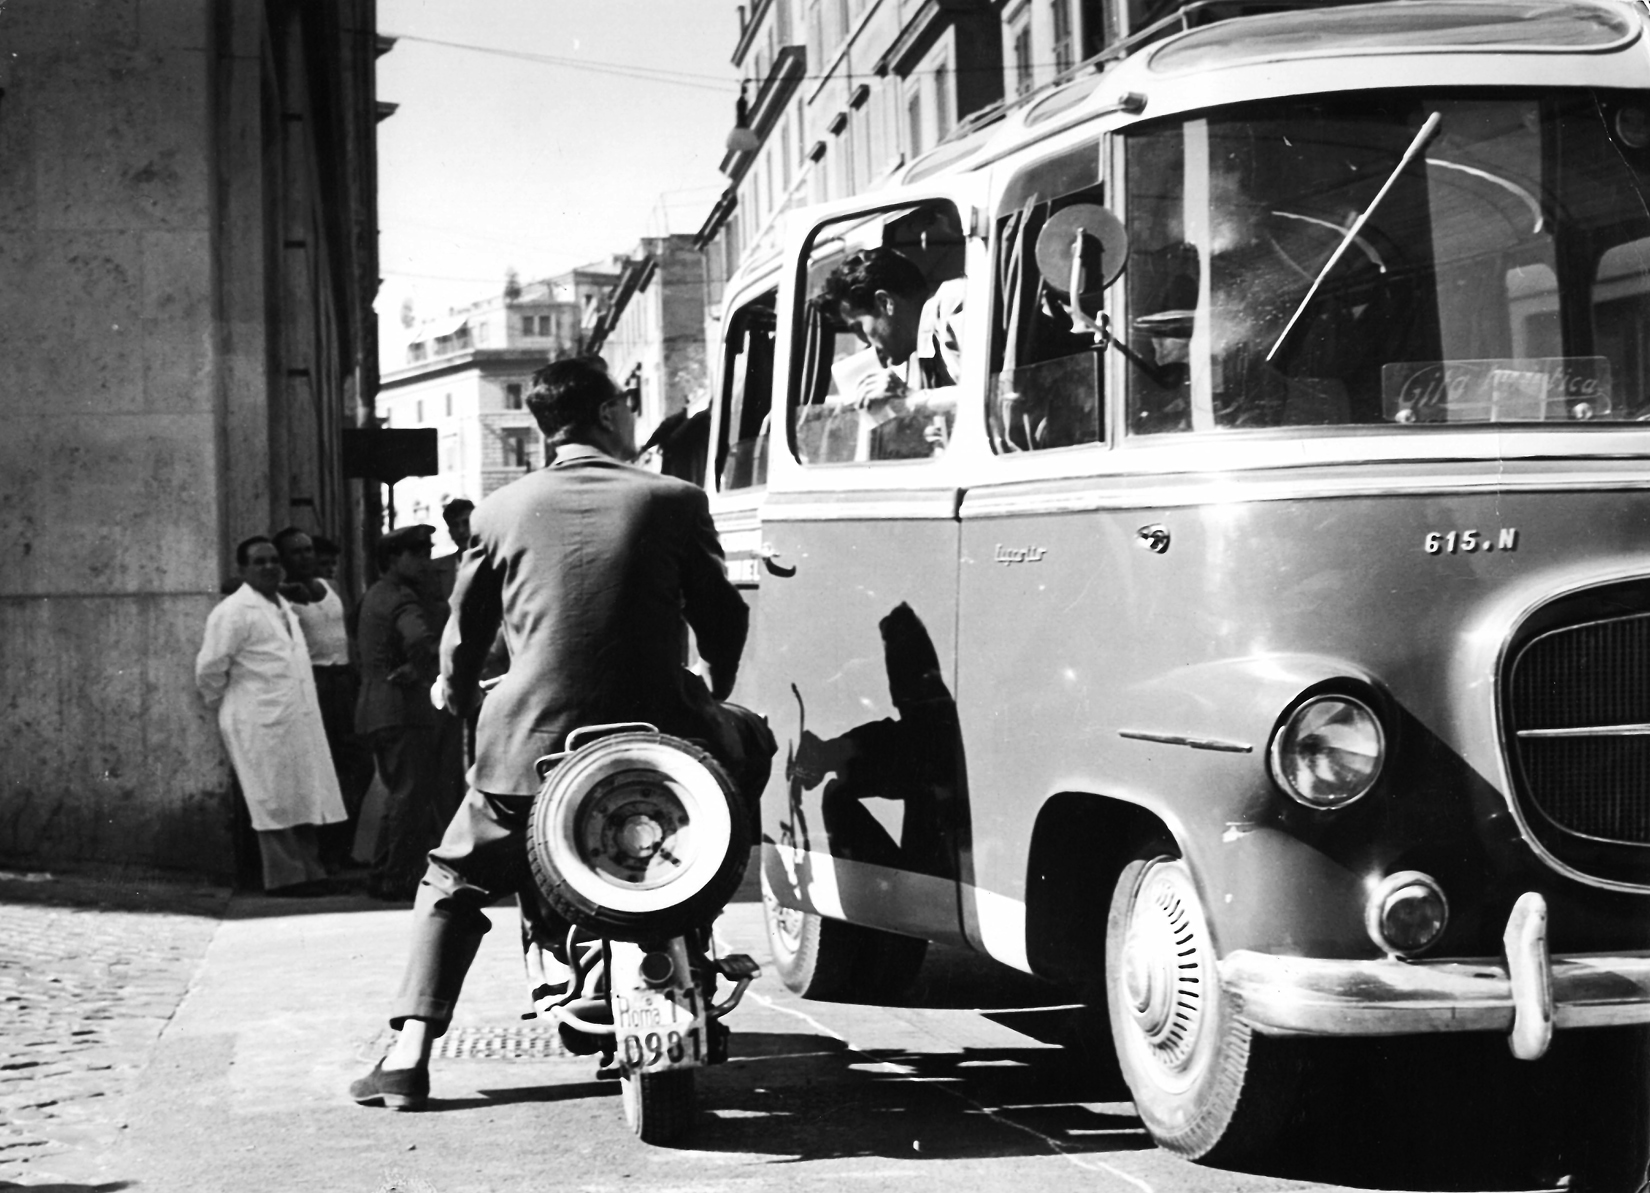 Amedeo during the 60's. Tour starting in minibus